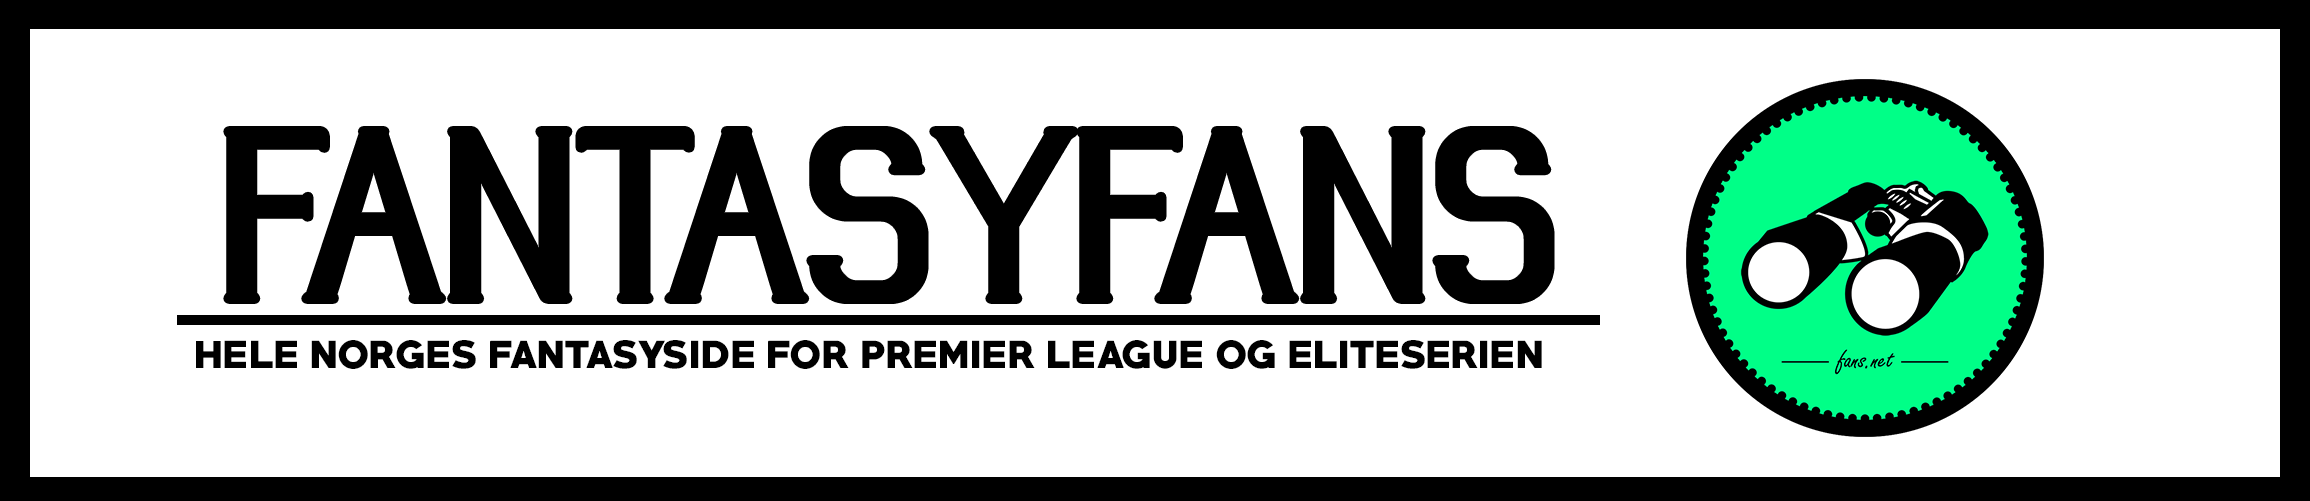 FantasyFans – Fantasy Premier League og Eliteserien 2020